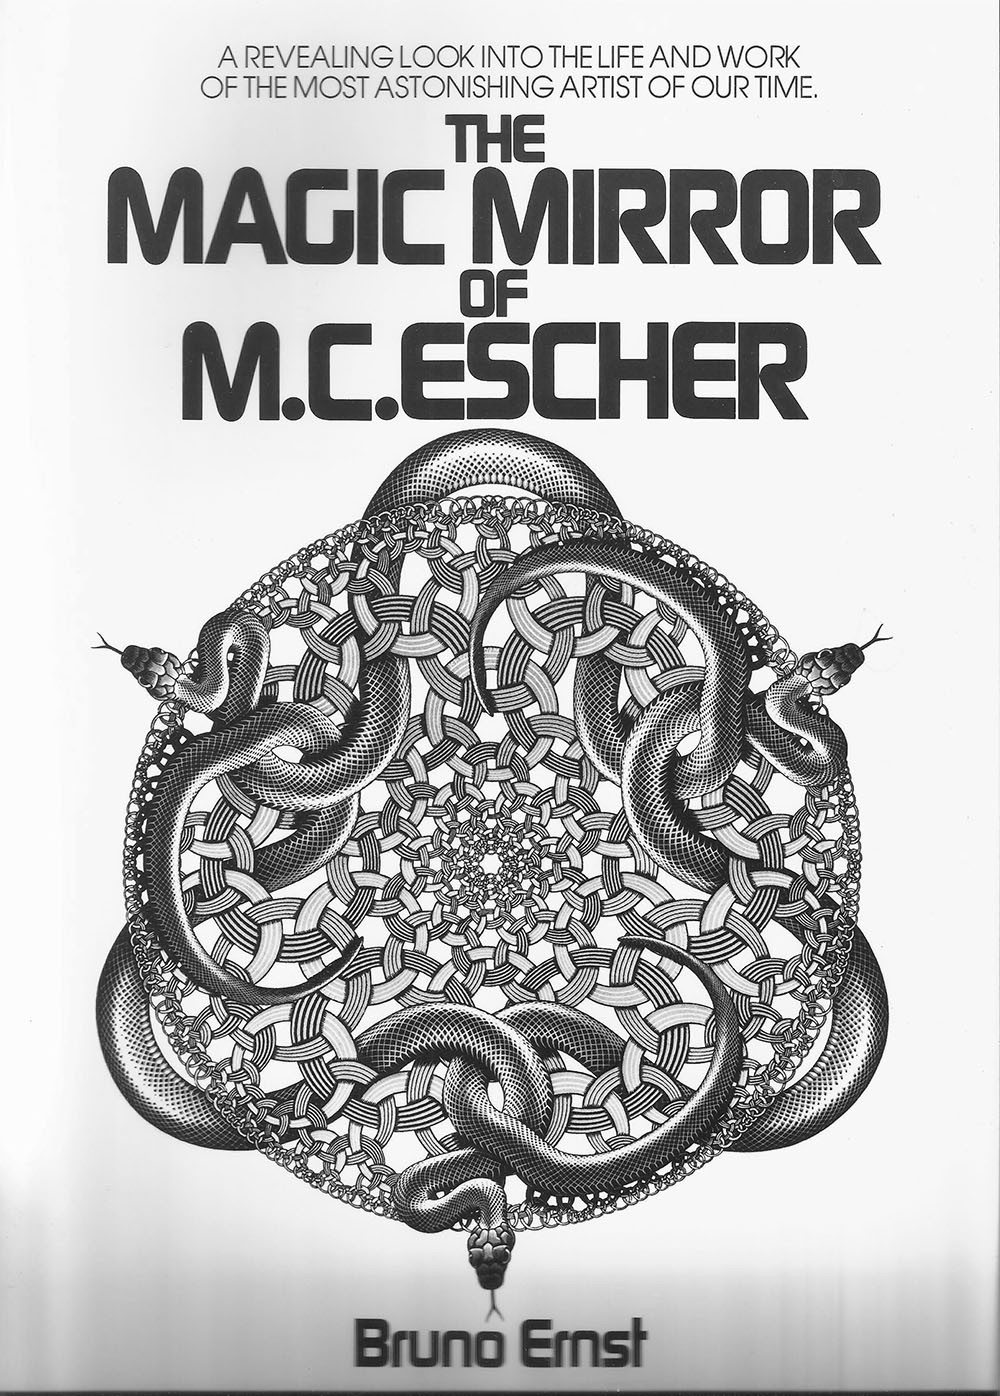 Magic mirror software